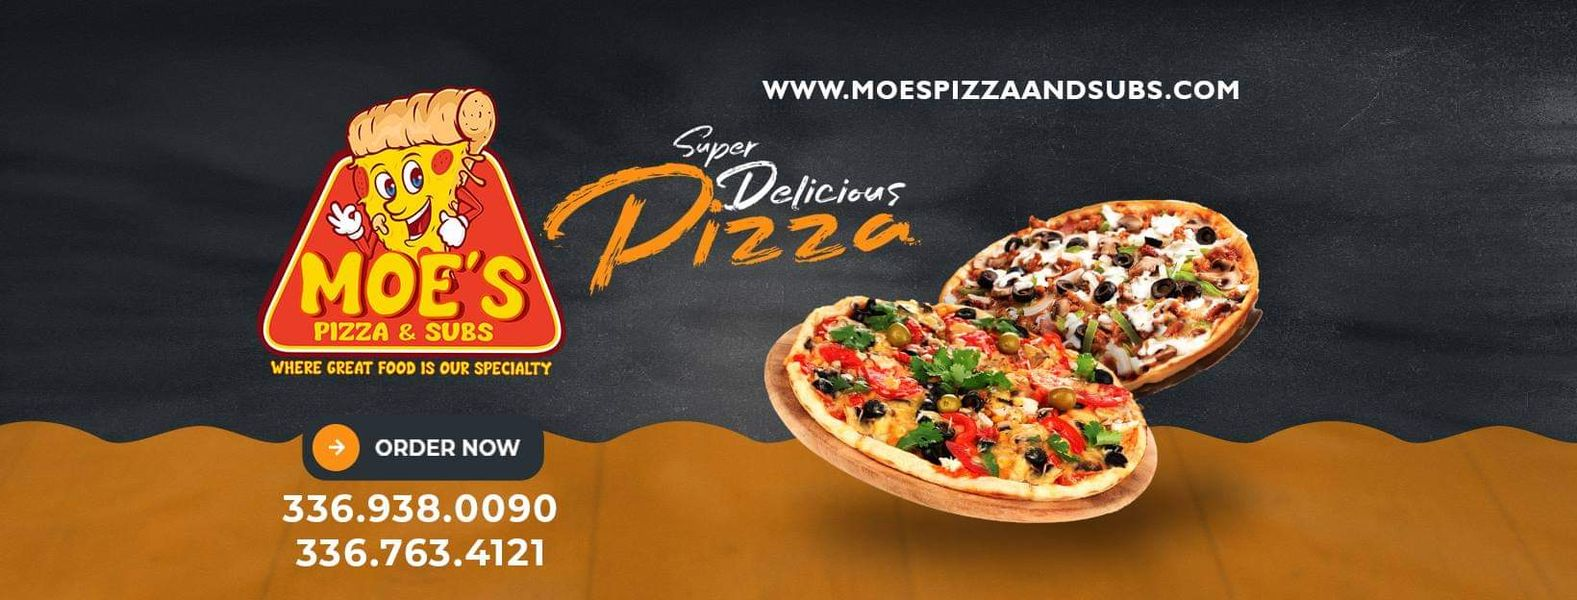 Picture of Moe's Pizza and Subs Greensboro NC